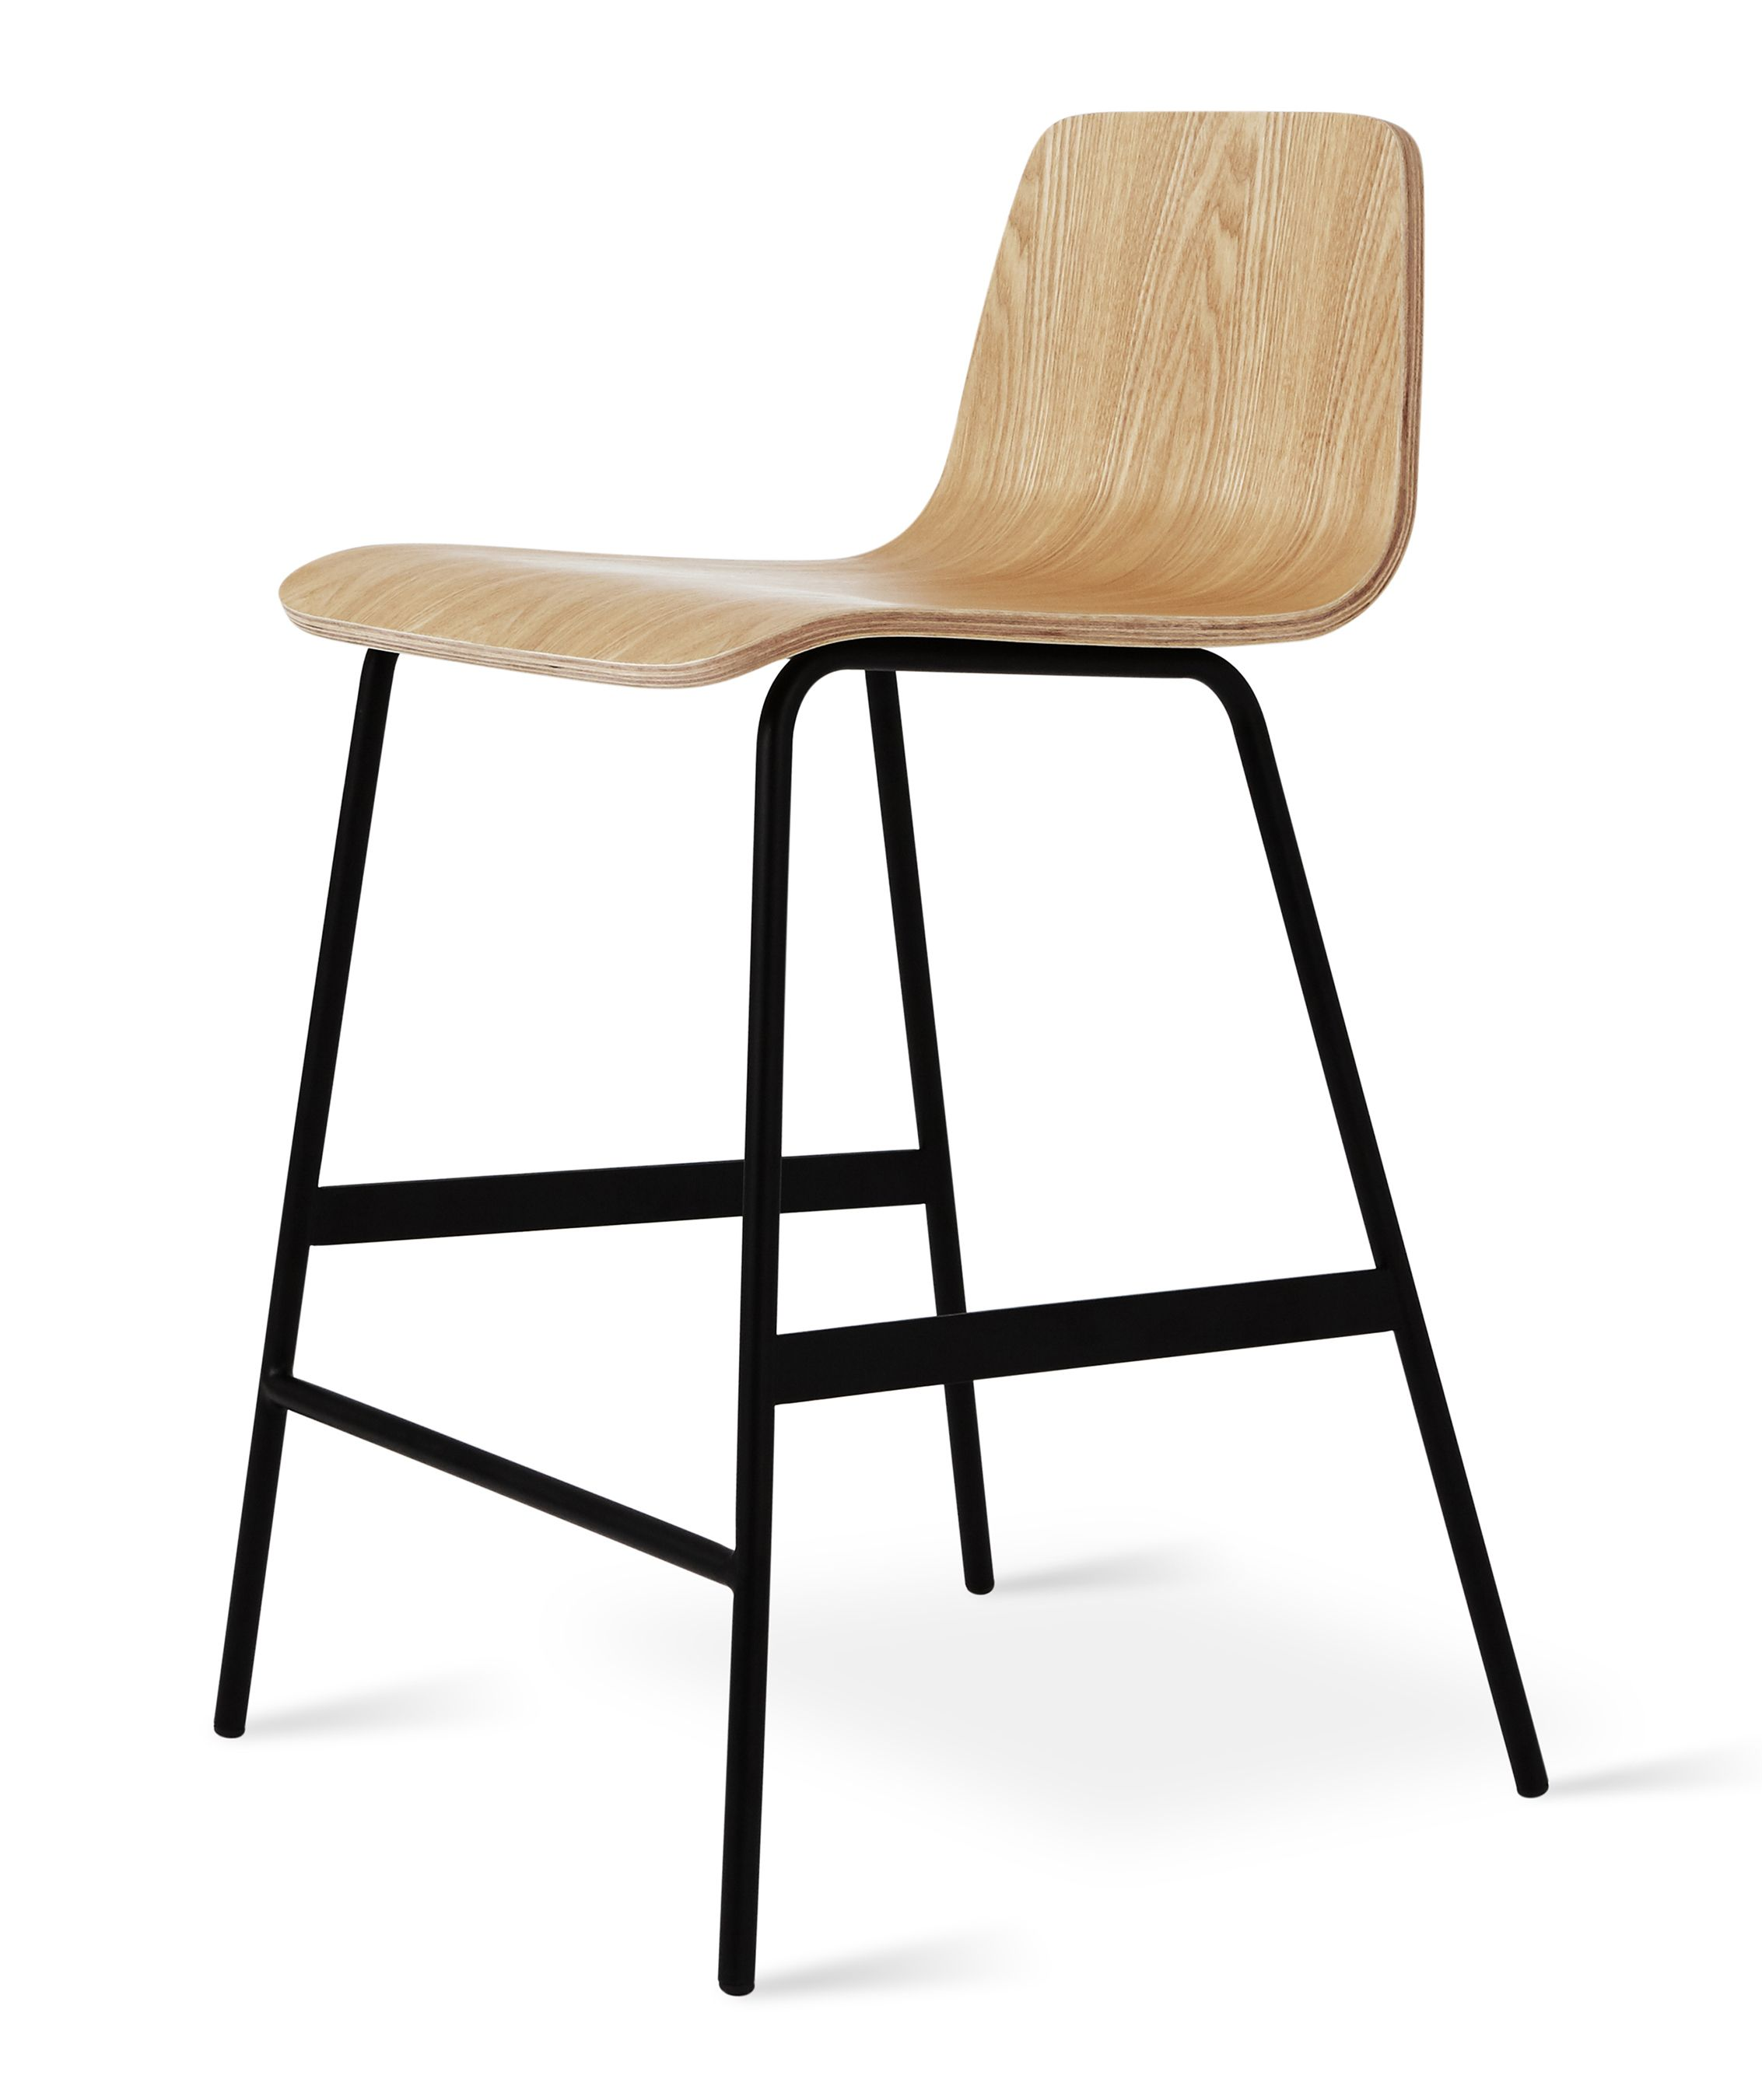 The Lecture Stool Is A Modern Reinterpretation Of A Classic